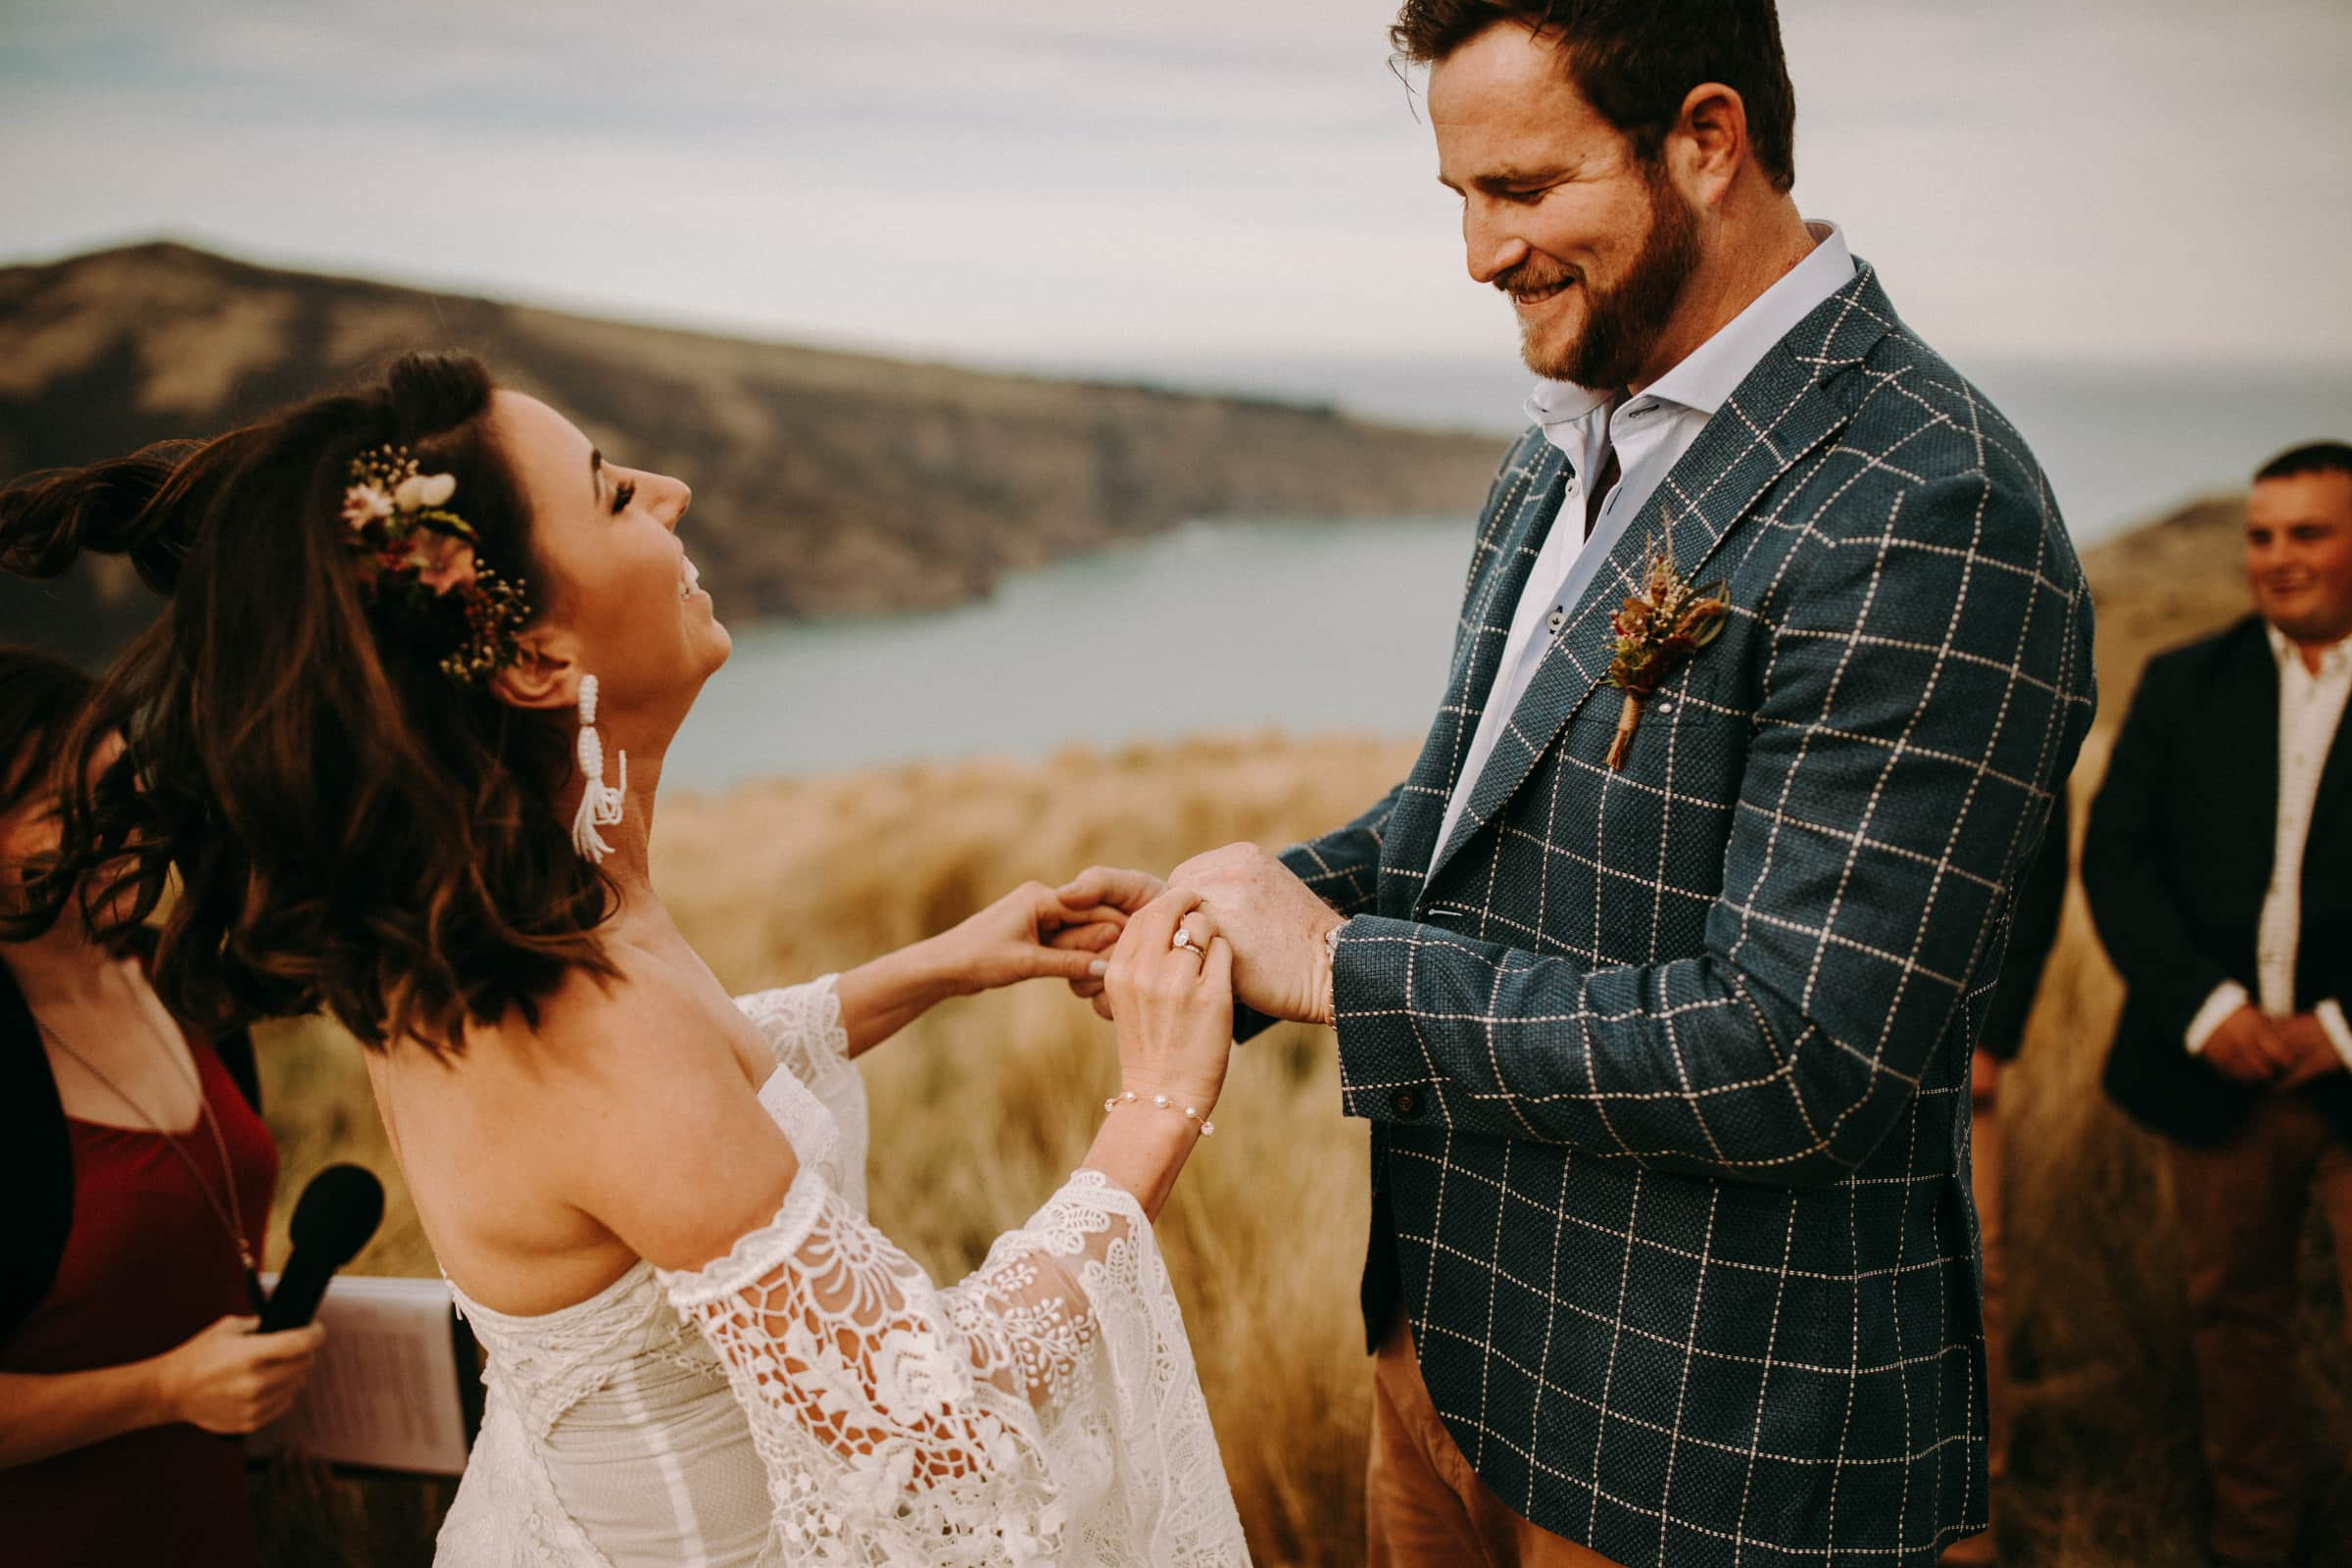 A wedding couple is exchanging wedding rings and both are smiling.